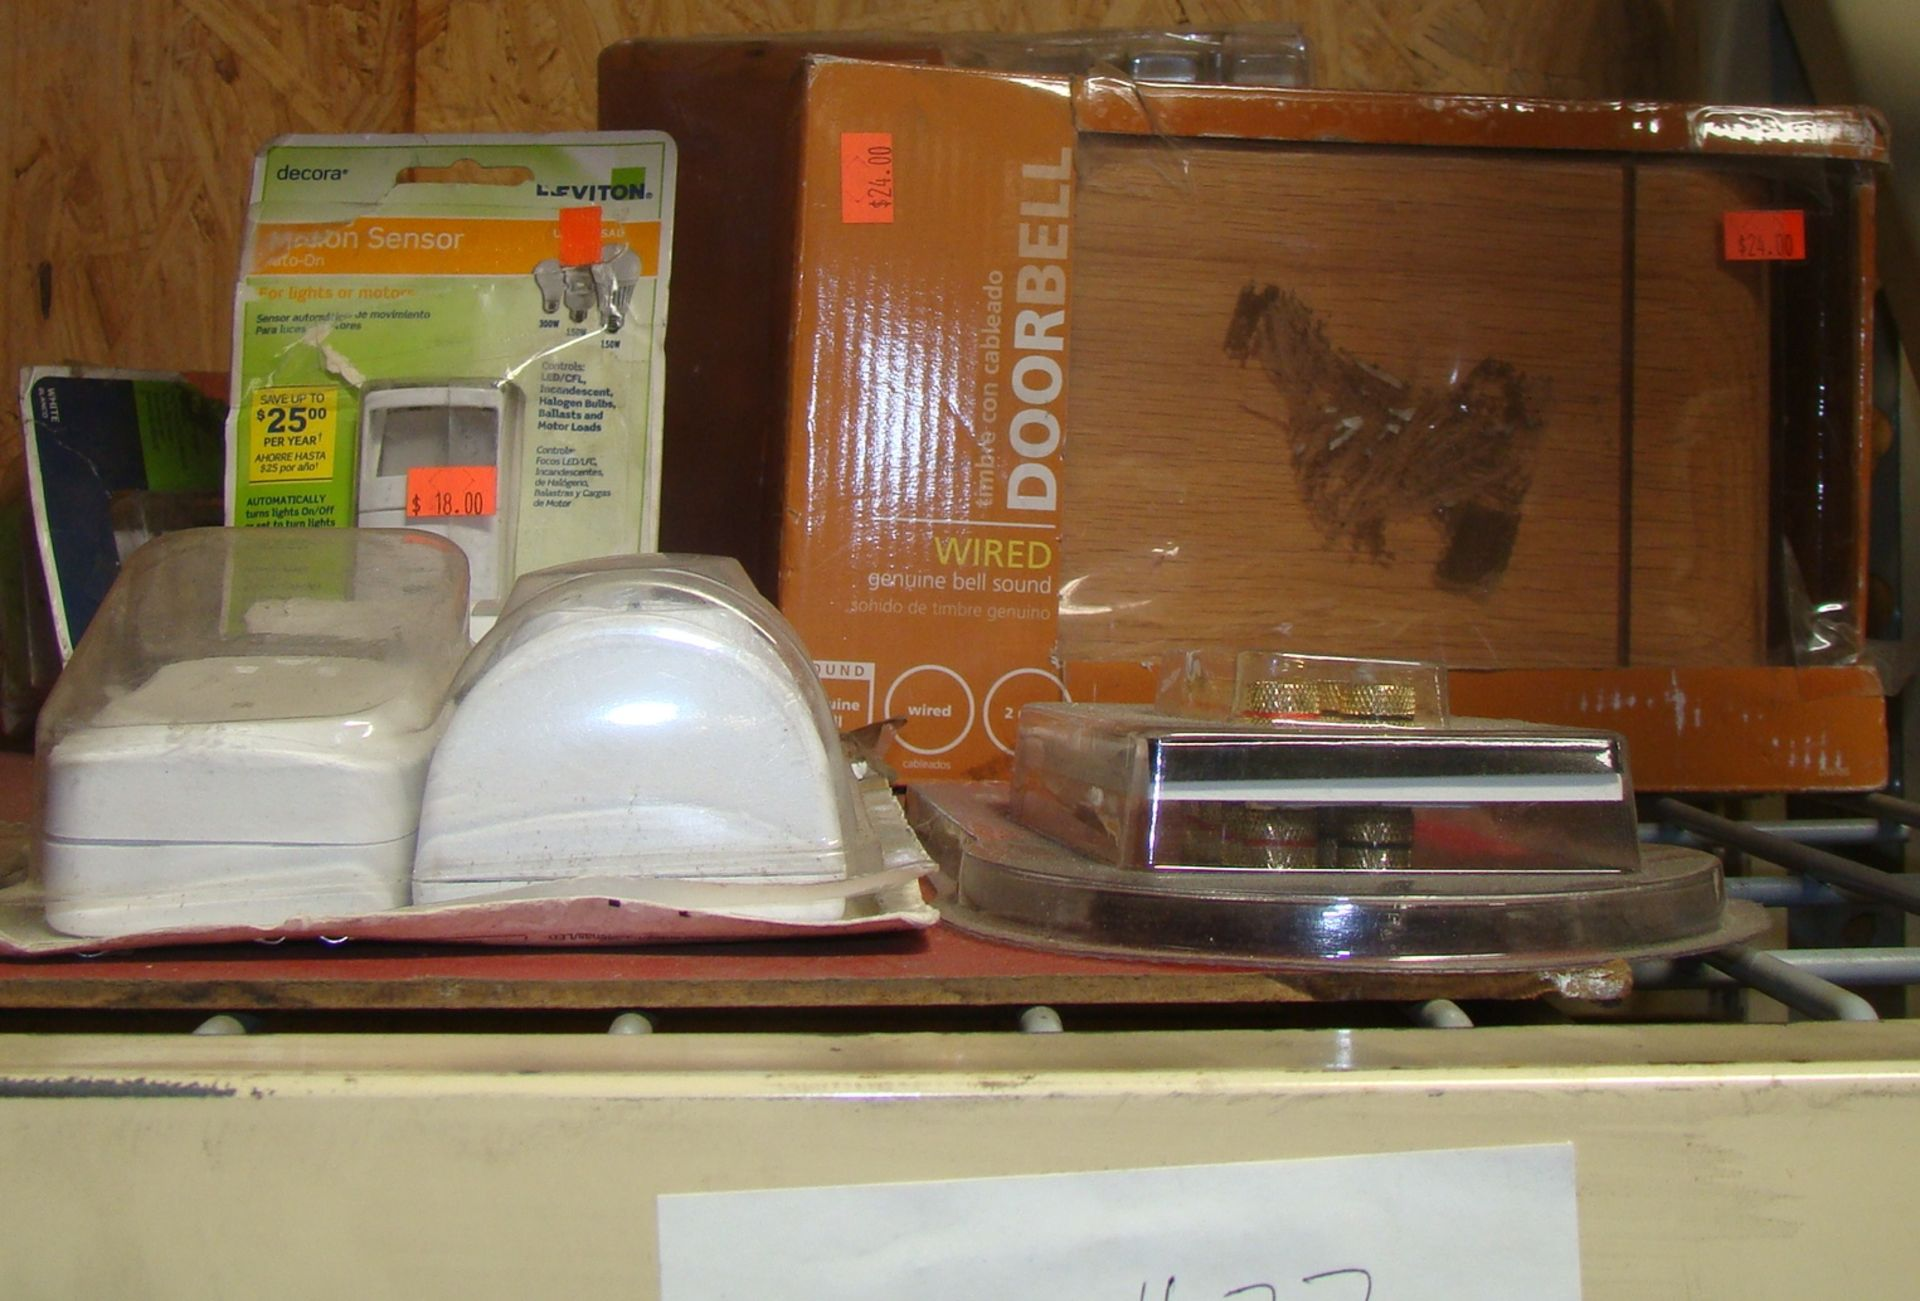 Lot 27 - Lot of Wired doorbell; Contractor wired doorbell;motion sensors; 4 Speaker Wall Plate